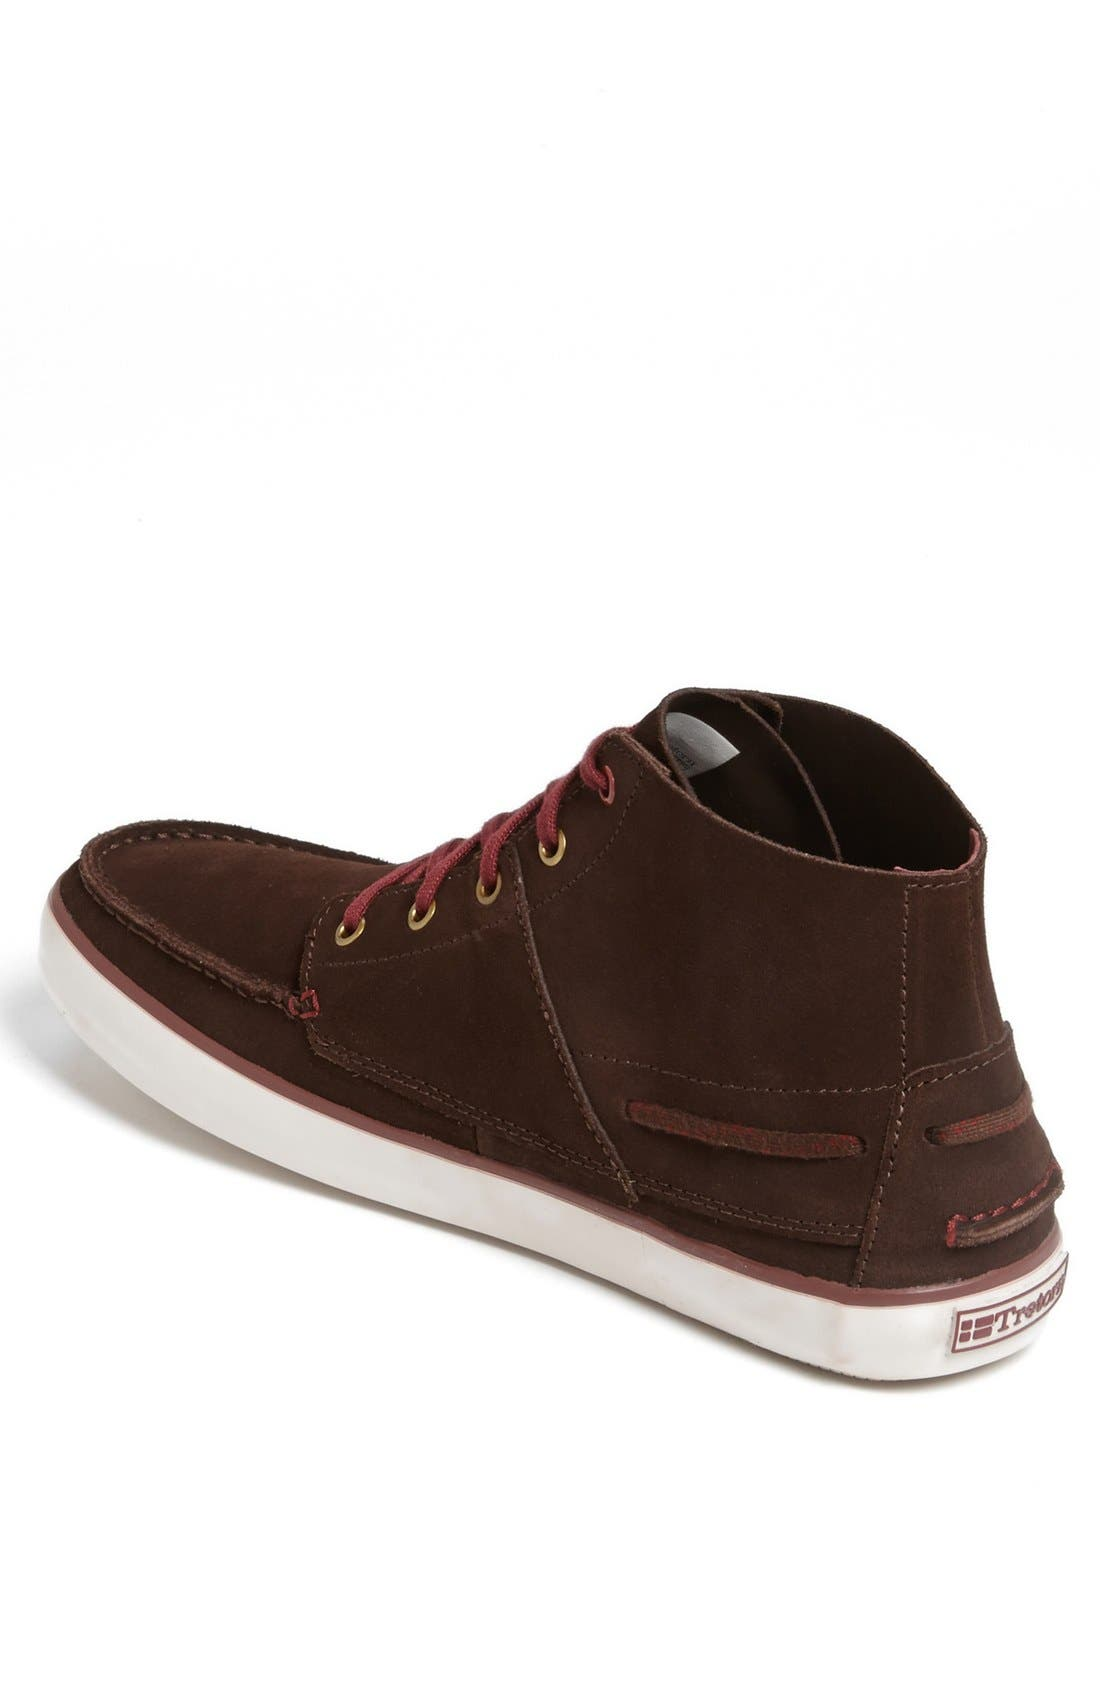 Alternate Image 2  - Tretorn 'Otto Mid' Suede Sneaker (Men)